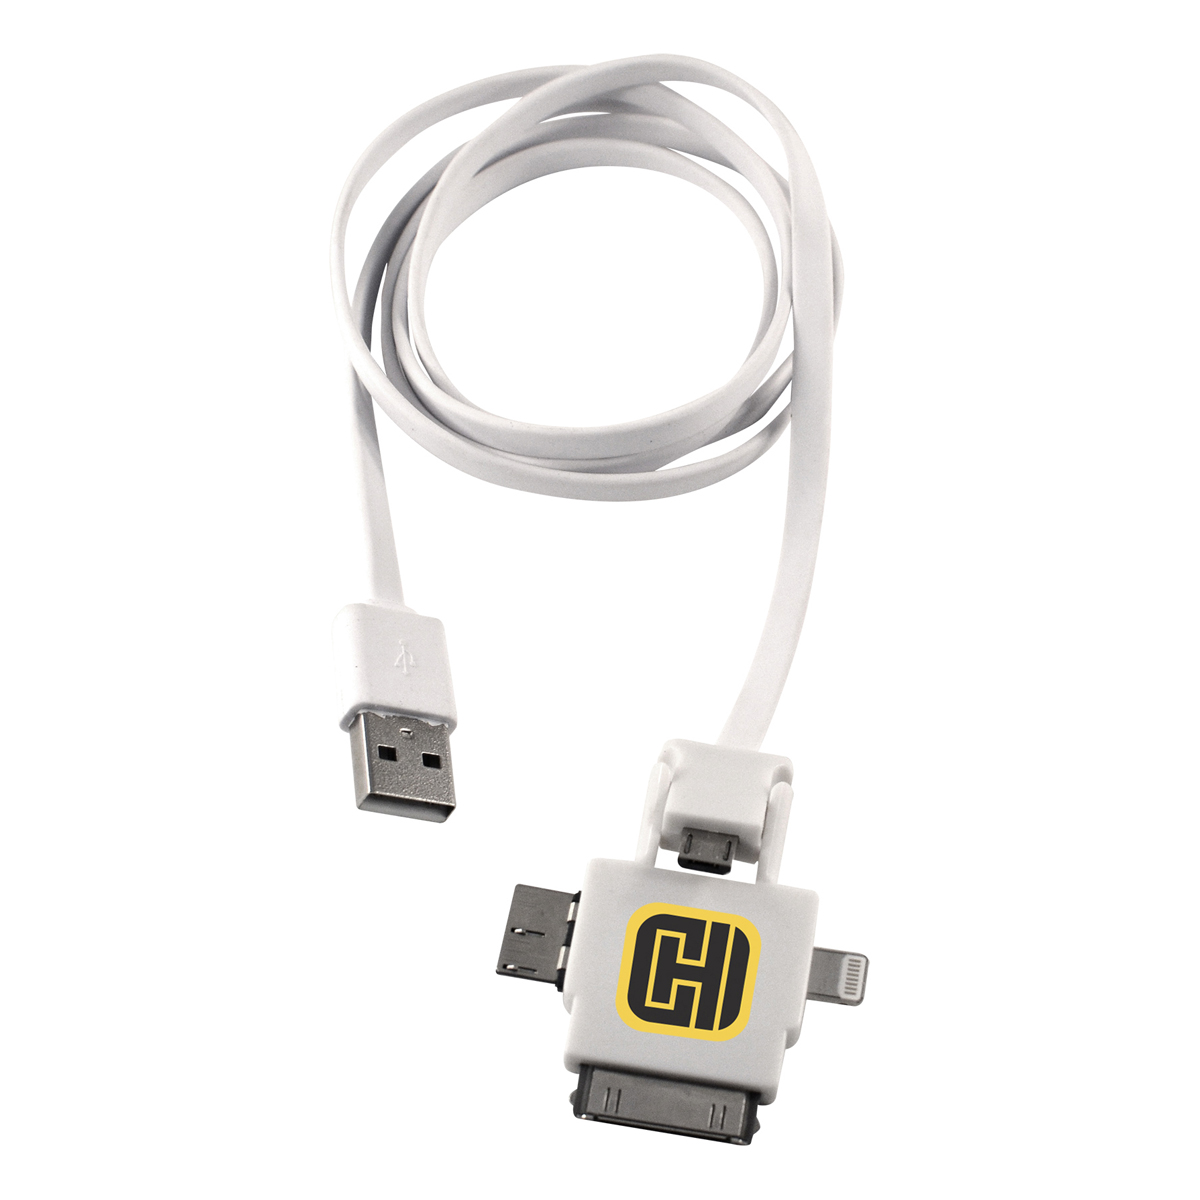 4 in 1 Cable Charger  (NP111 _PB)